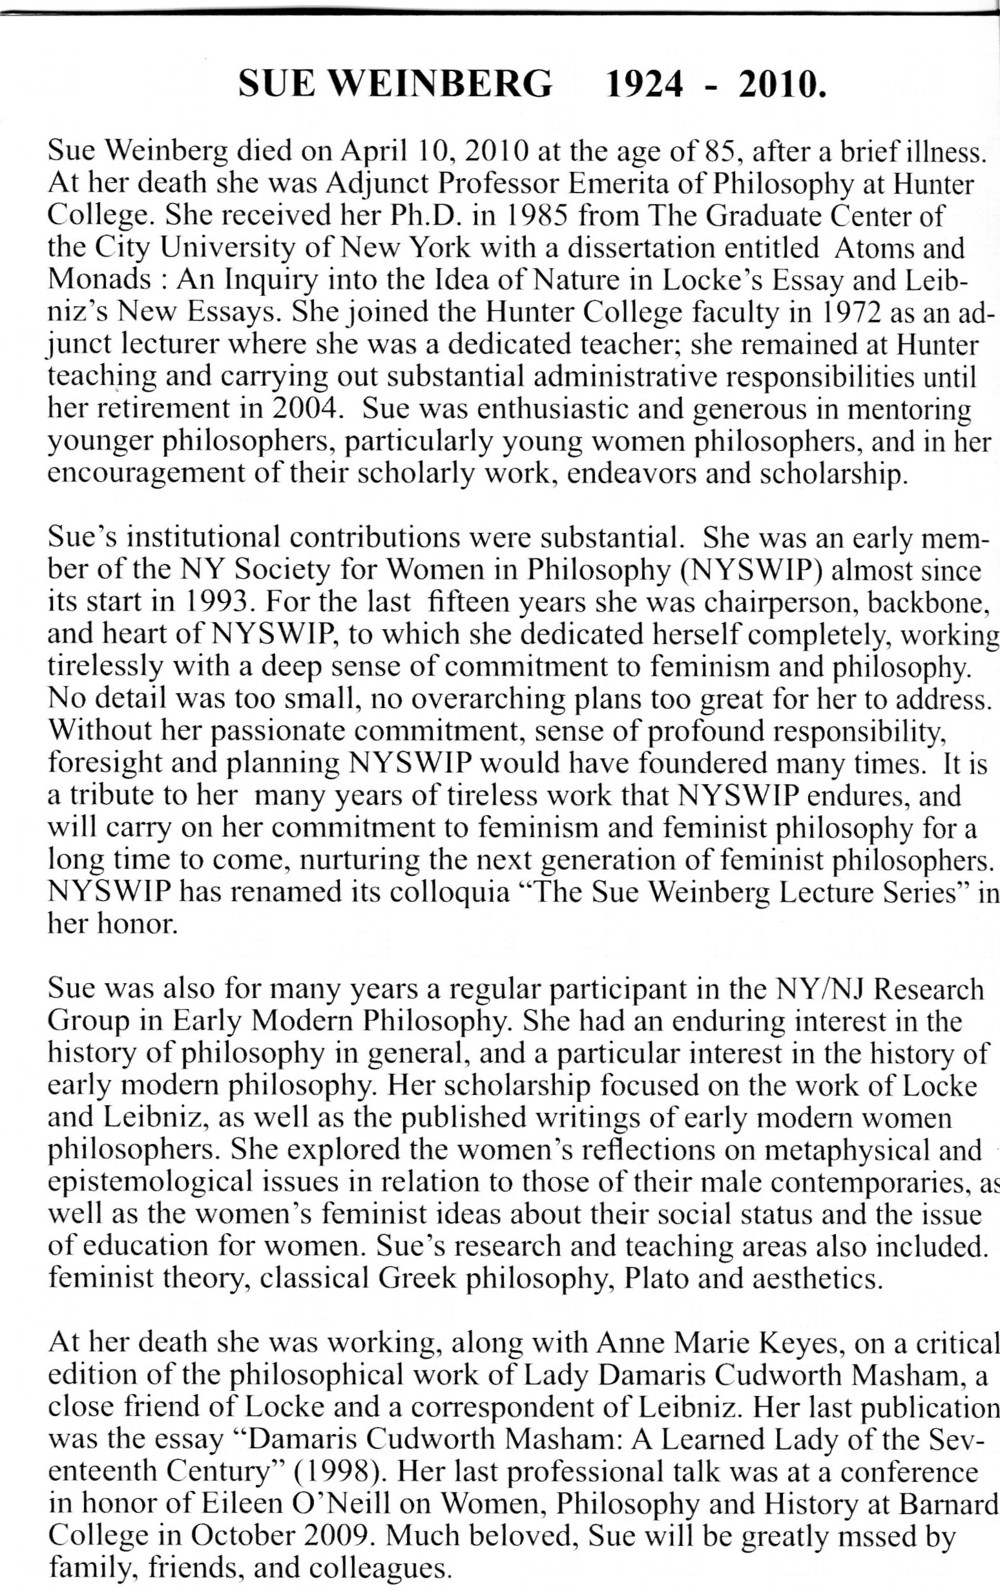 Obituary for Sue Weinberg from Conference In Honor of Sue Weinberg program, 2010.  Society for Women in Philosophy Collection, Feminist Theory Archive, Brown University